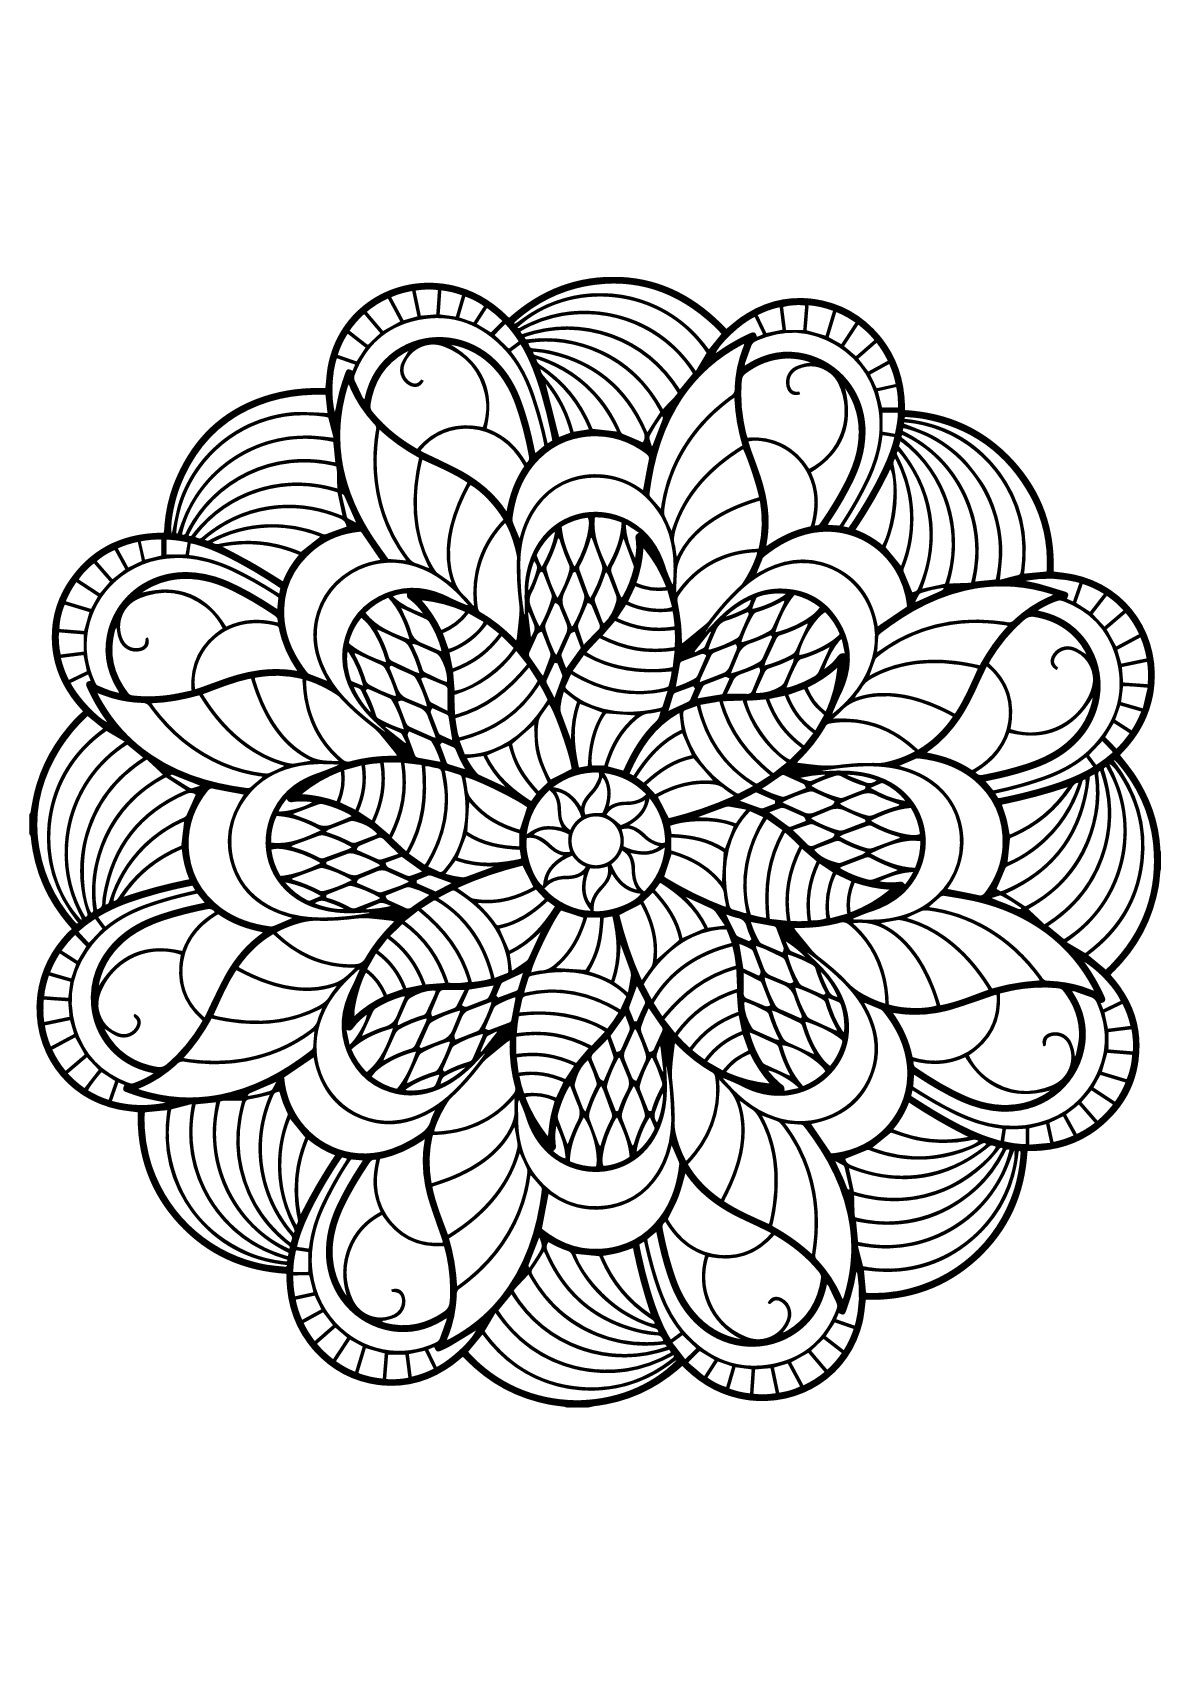 free printable mandalas for adults free printable mandala coloring pages for adults best printable free mandalas for adults